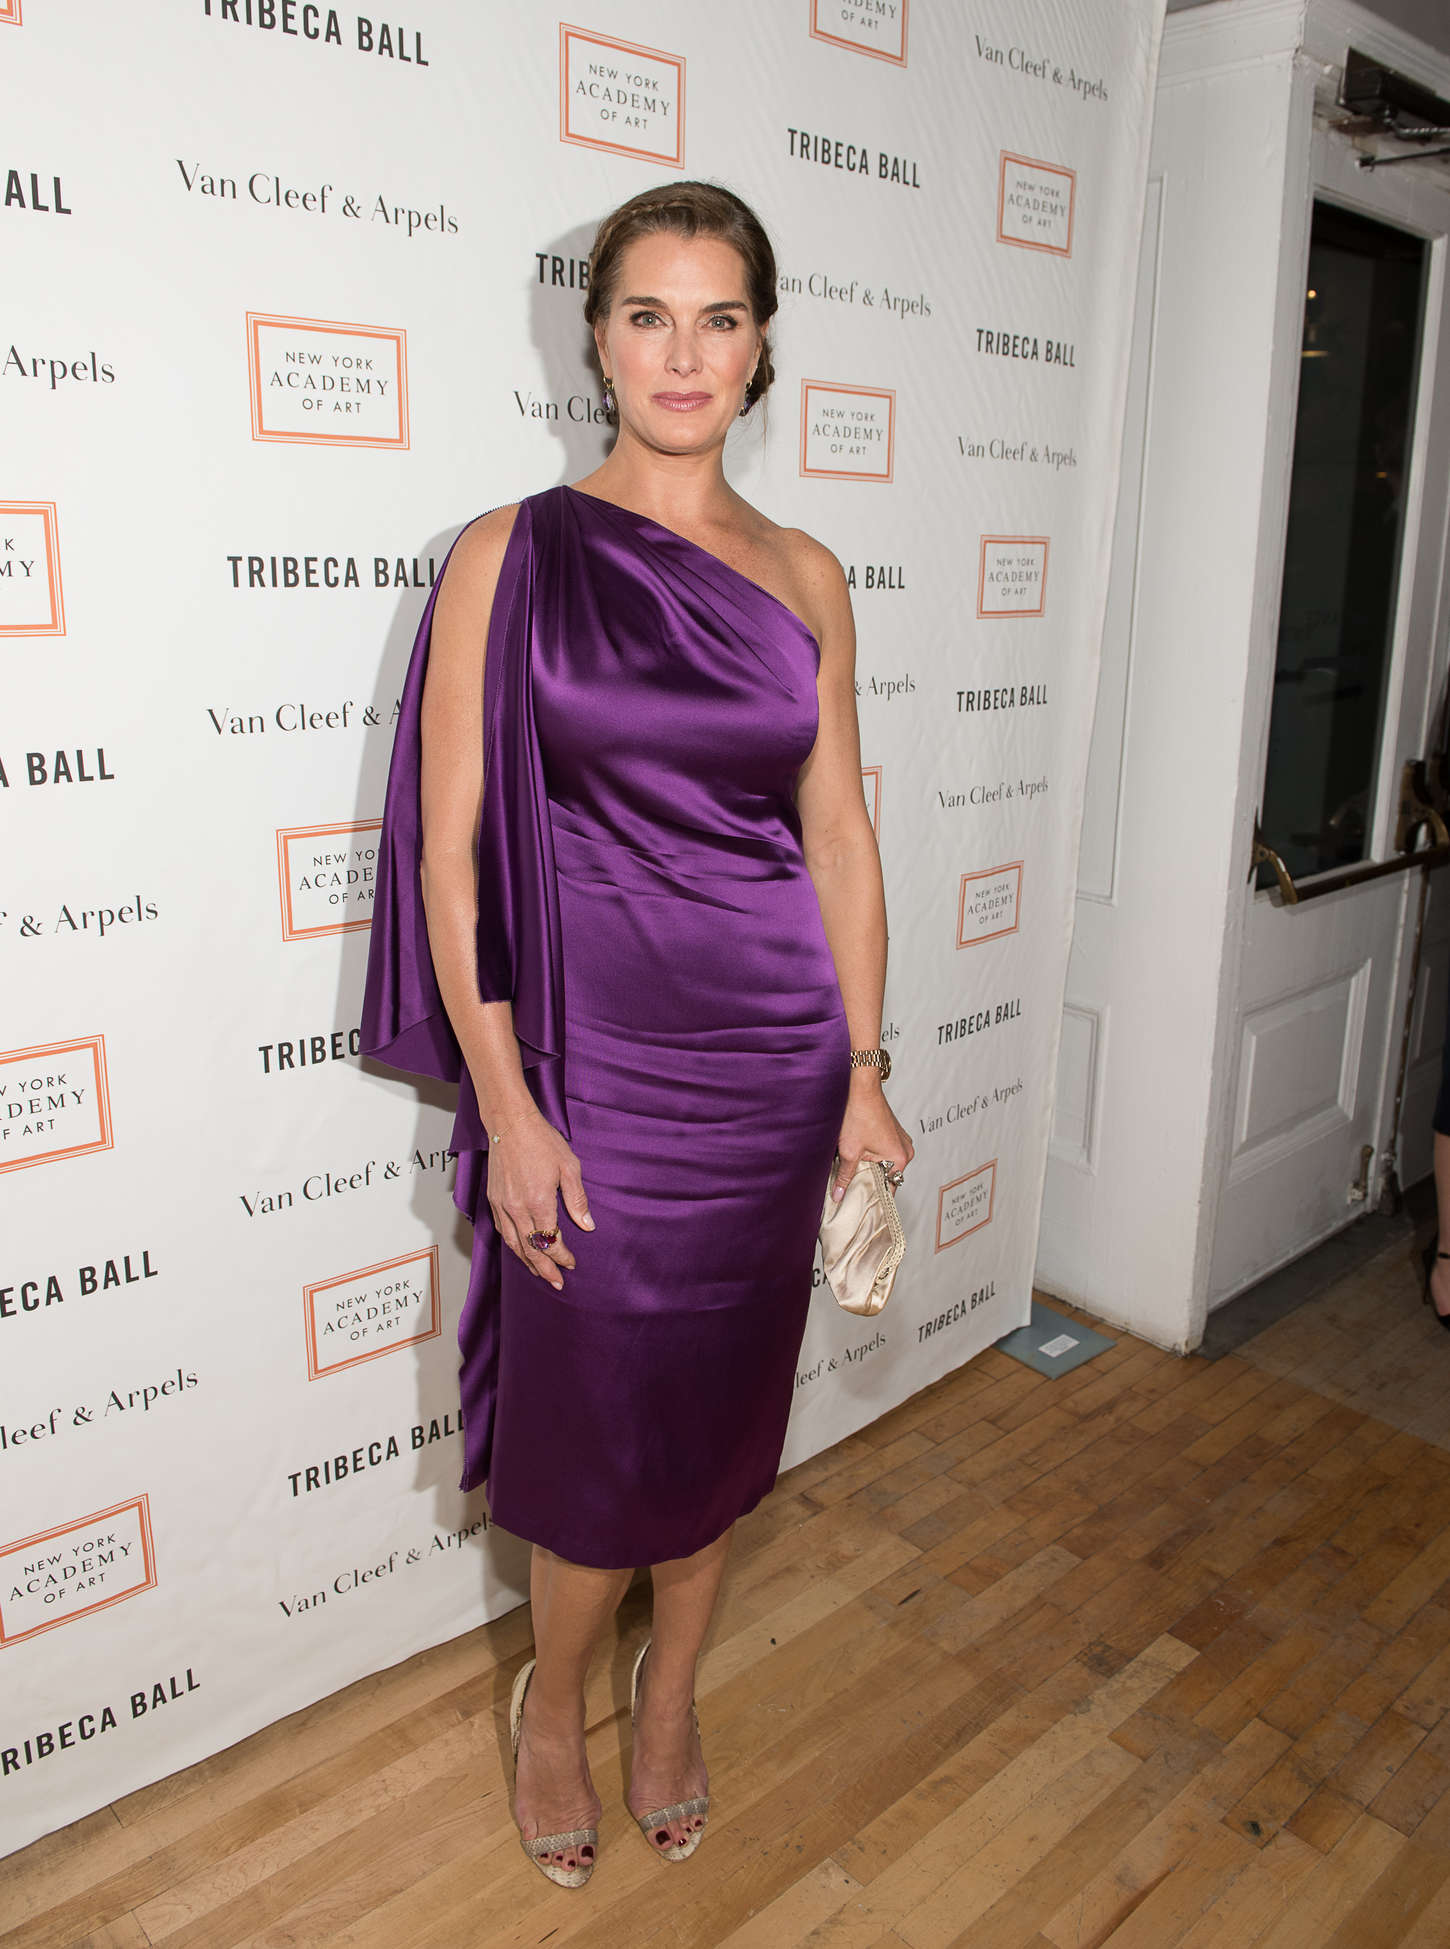 Brooke Shields Tribeca Ball in New York